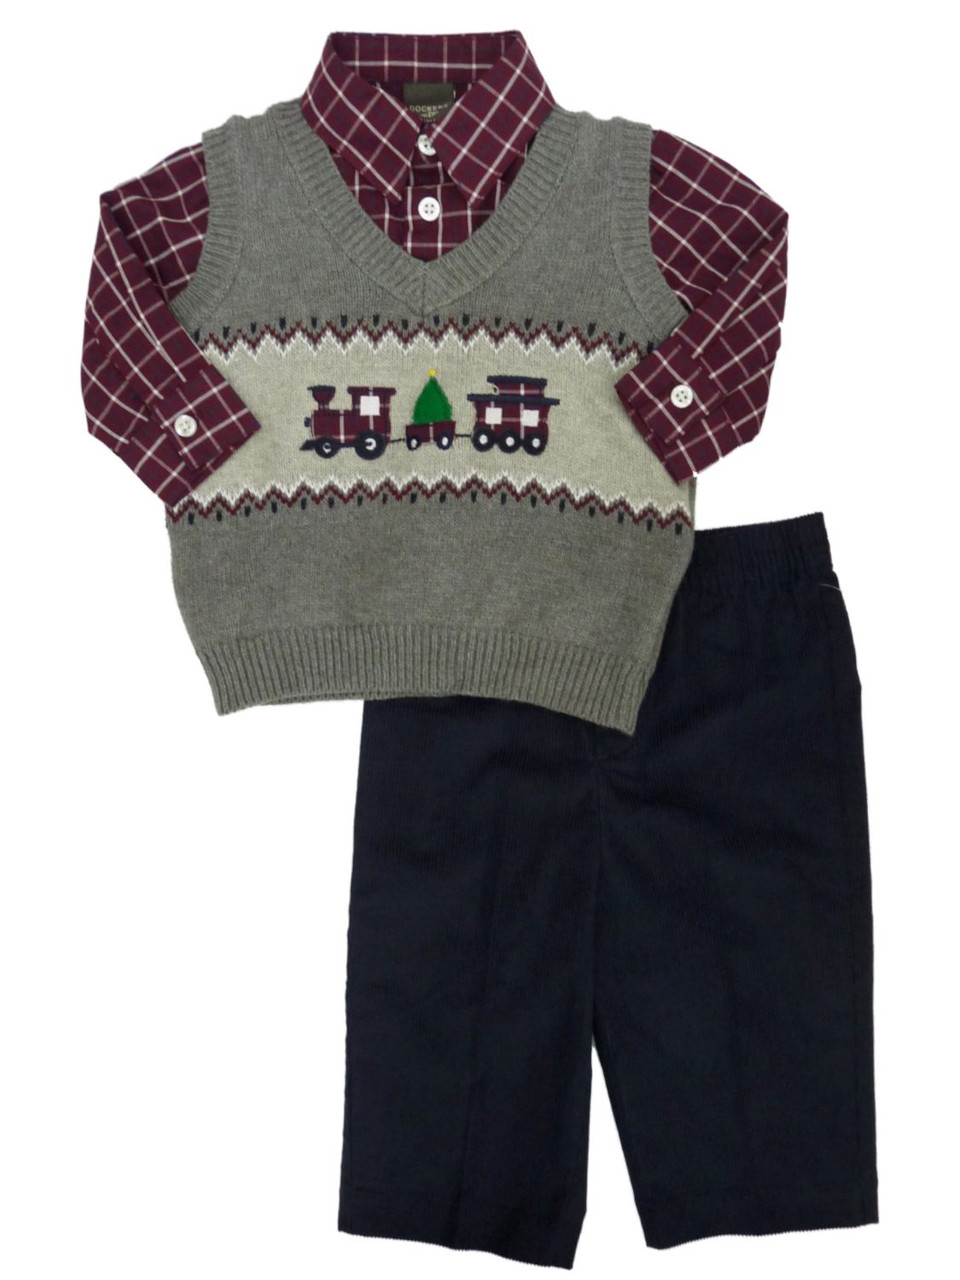 56900ac4c Dockers Infant & Toddler Boys 3P Holiday Sweater Vest Shirt & Corduroy  Pants - The Primrose Lane